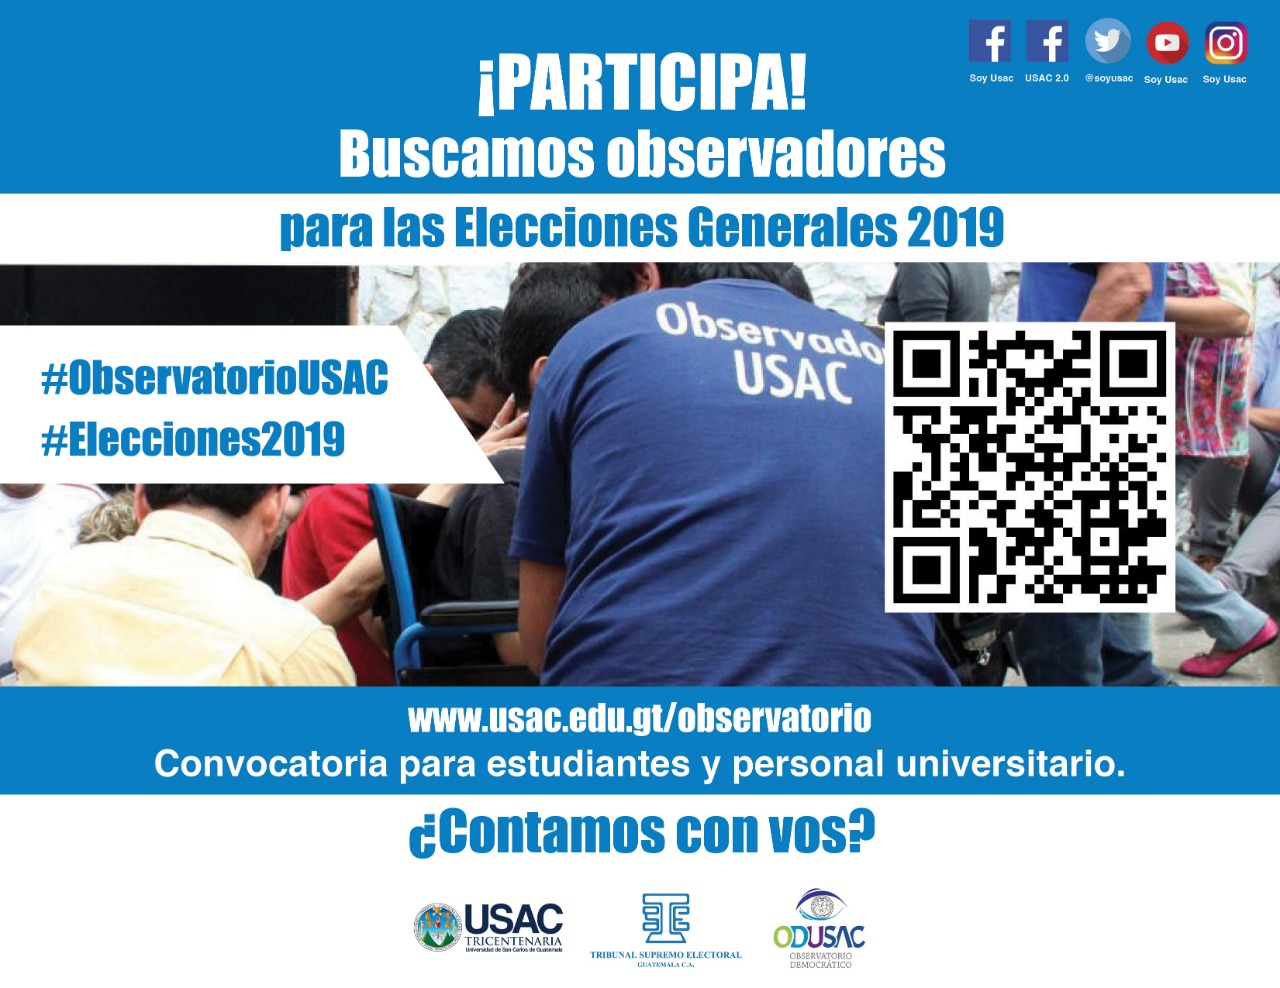 Inscribete como observador o voluntario